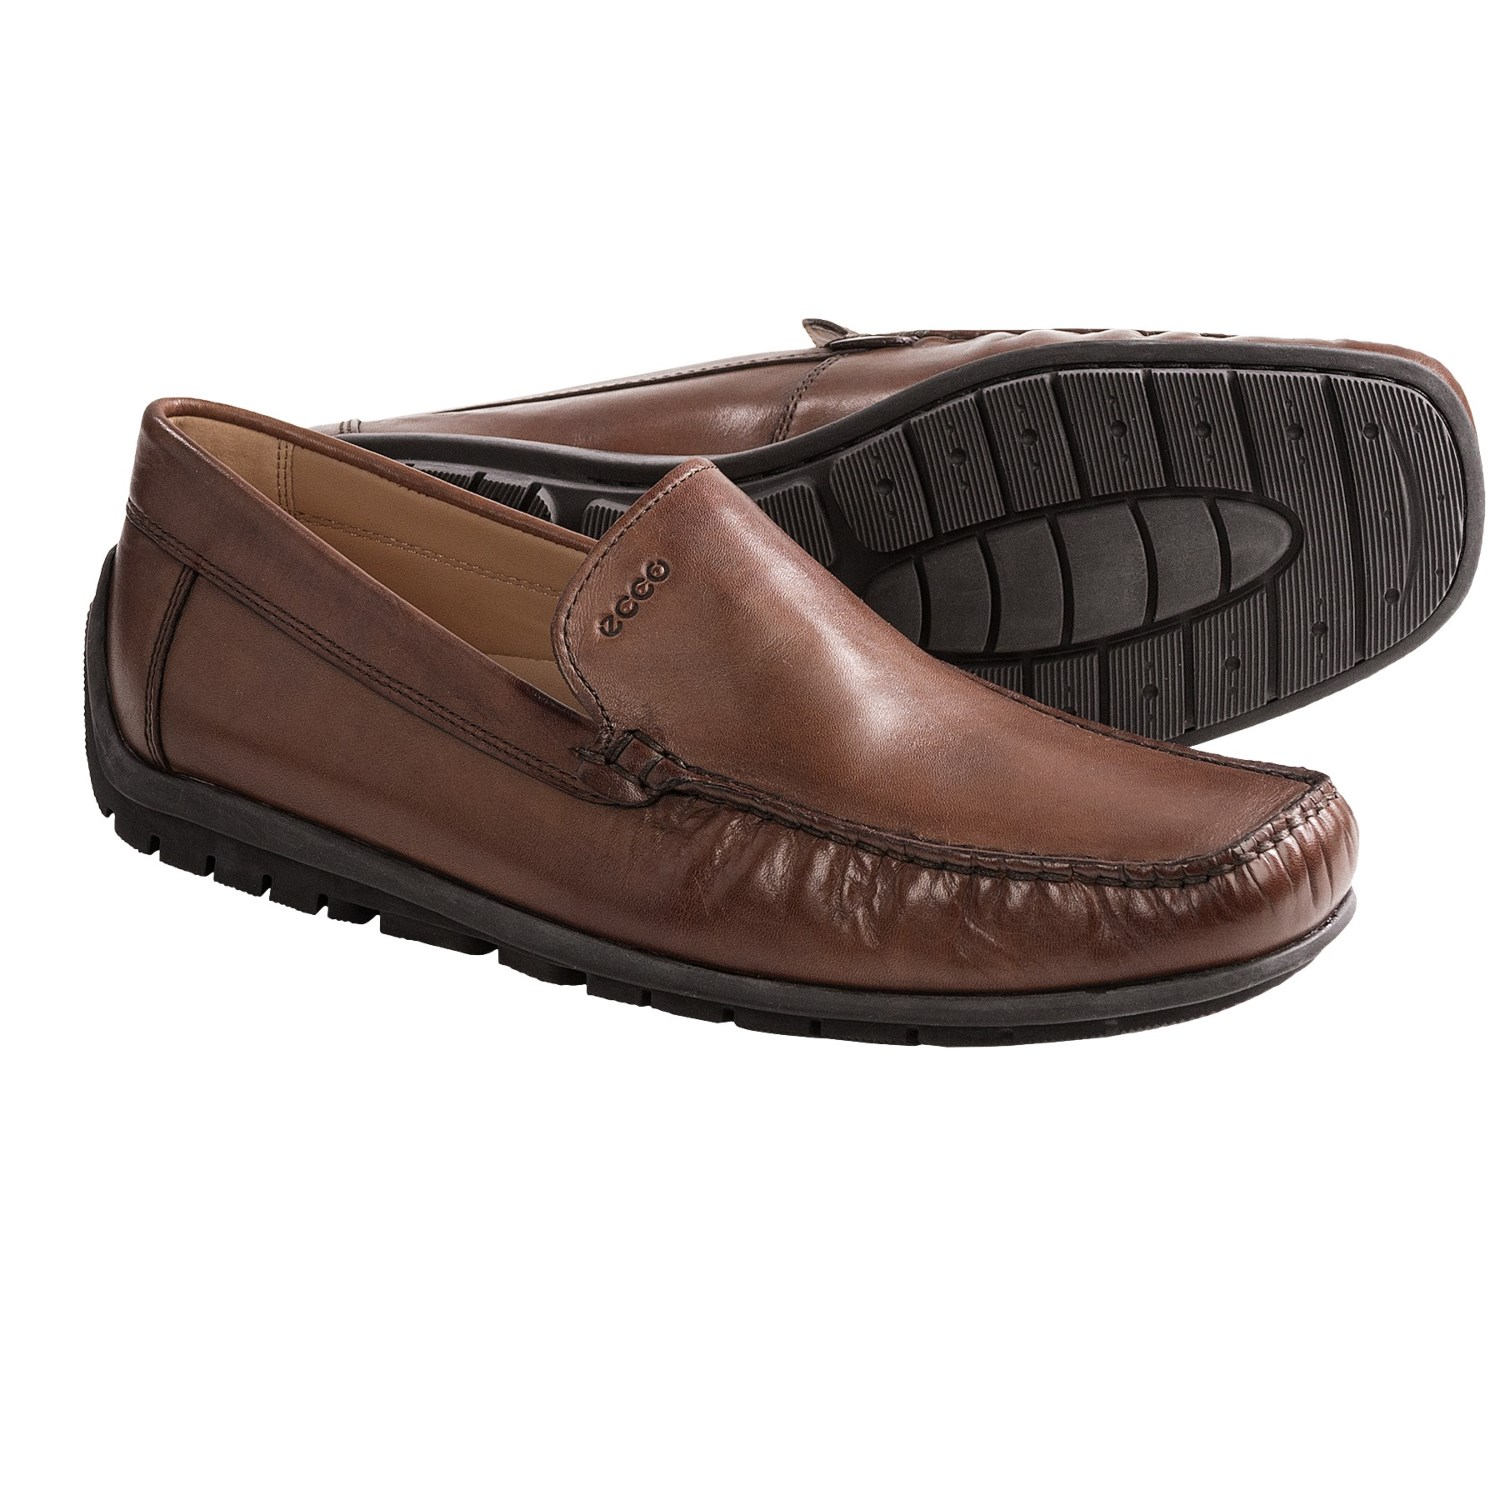 Moccasin style shoes are made for both men and women and are usually worn during the winter months. Moccasins were originally worn by the first settlers in North .